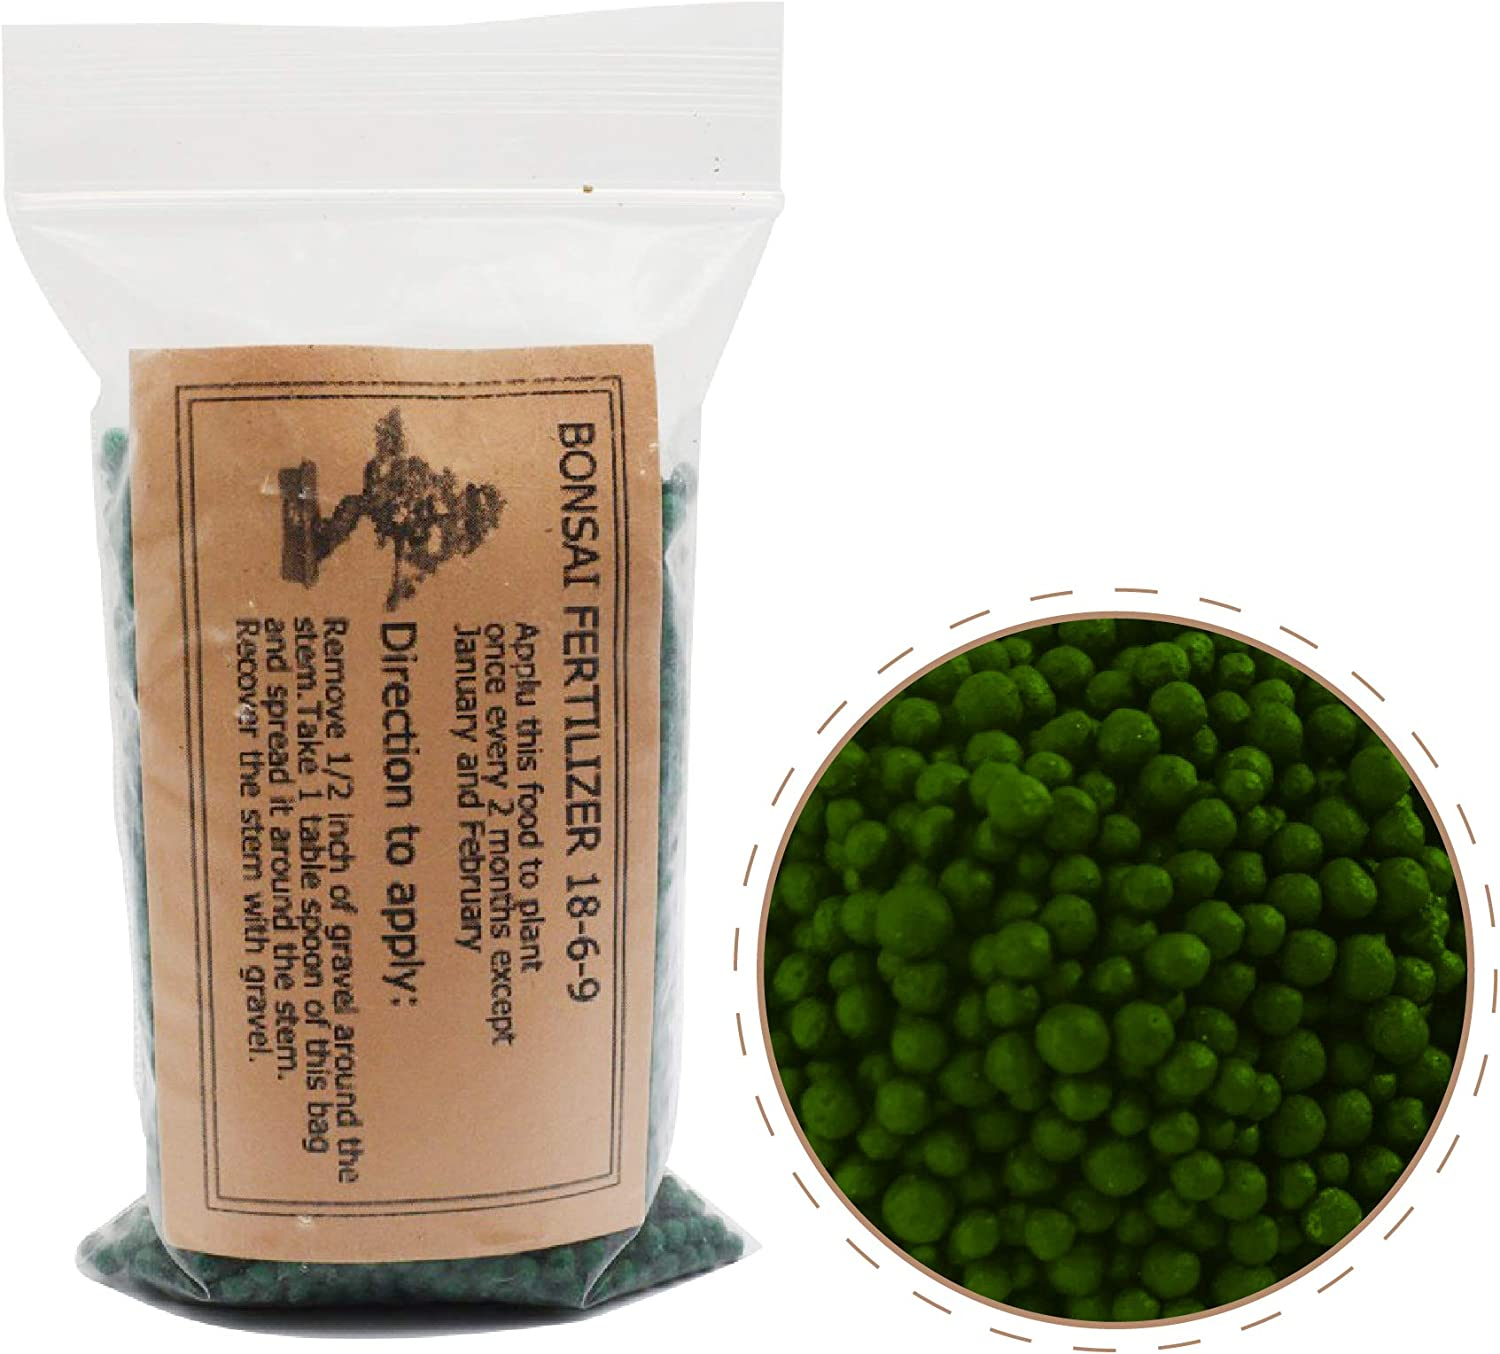 9GreenBox Bonsai Fertilizer Pellets - Ready-to-Use Time-Release Granular Food for Potted Dwarf Trees - Perfect for Beginners - Strong 18-6-9 Formula for Better Foliage and Healthier Roots - 5oz Bag